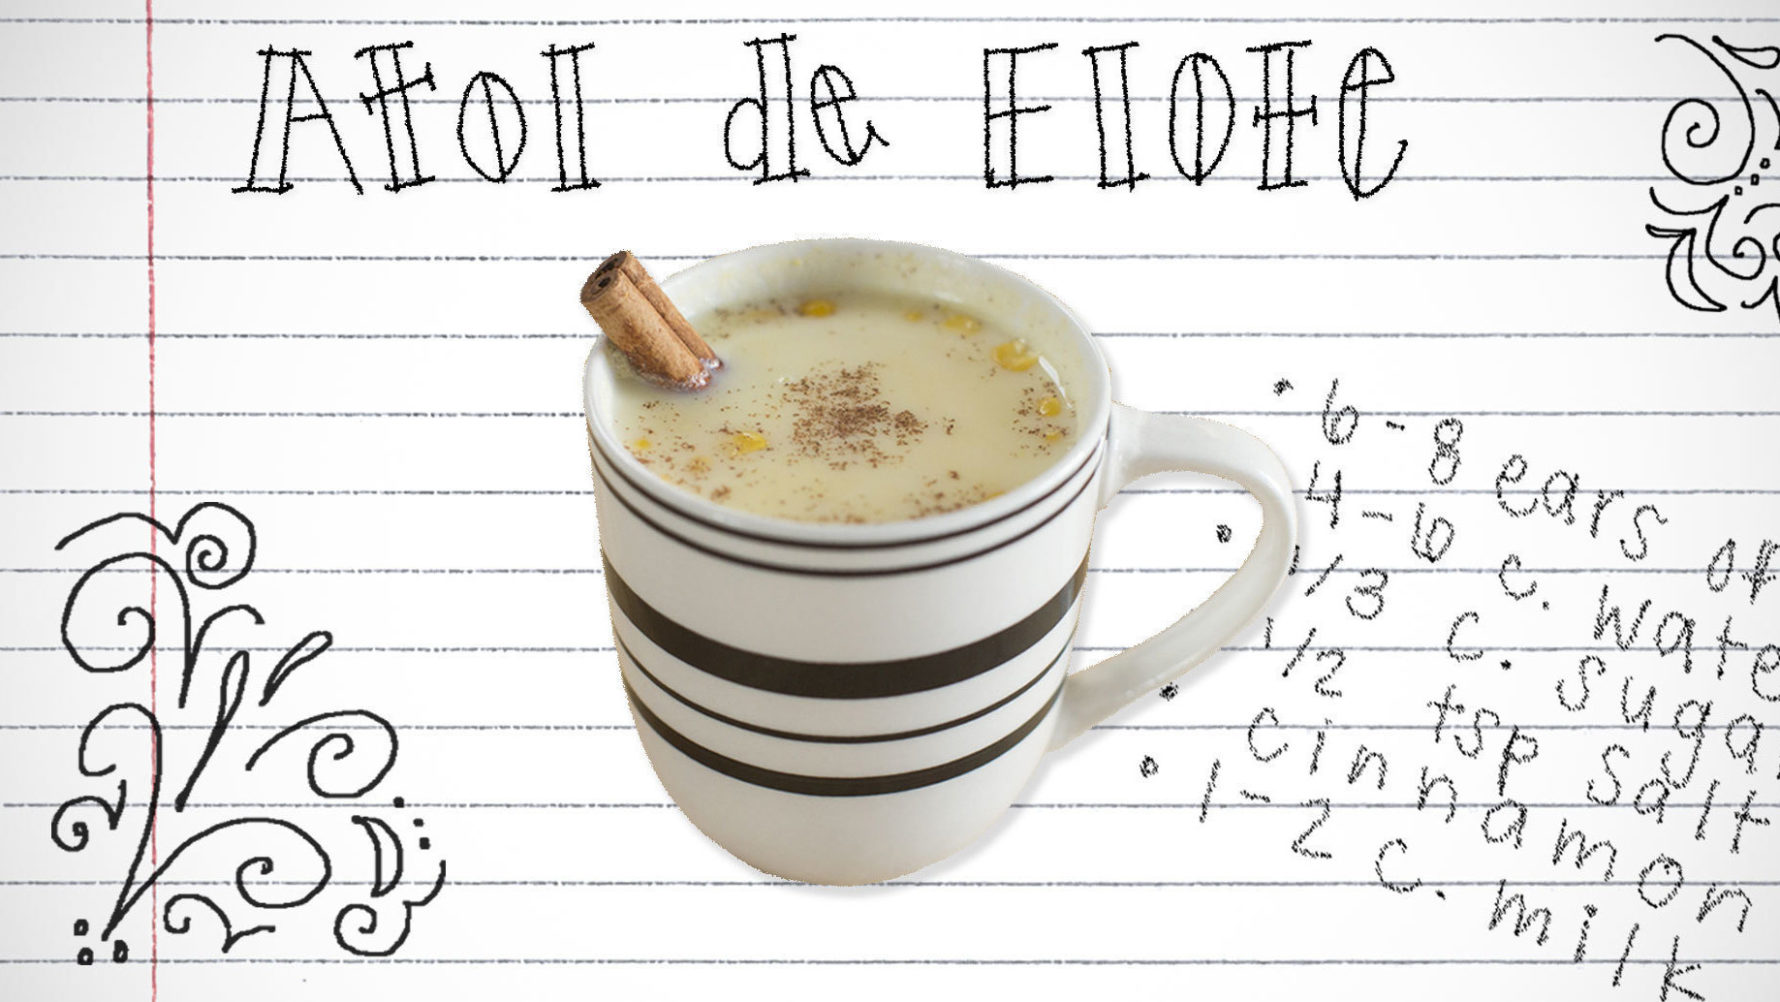 Essay On Health Student Jose Rivas Wrote An Essay About A Weekly Tradition Of Enjoying  Atole With His Late Father In El Salvador  College Essay Paper Format also Do My Hw Students Serve Up Stories Of Beloved Family Recipes In A Global  Buy Essay Papers Online